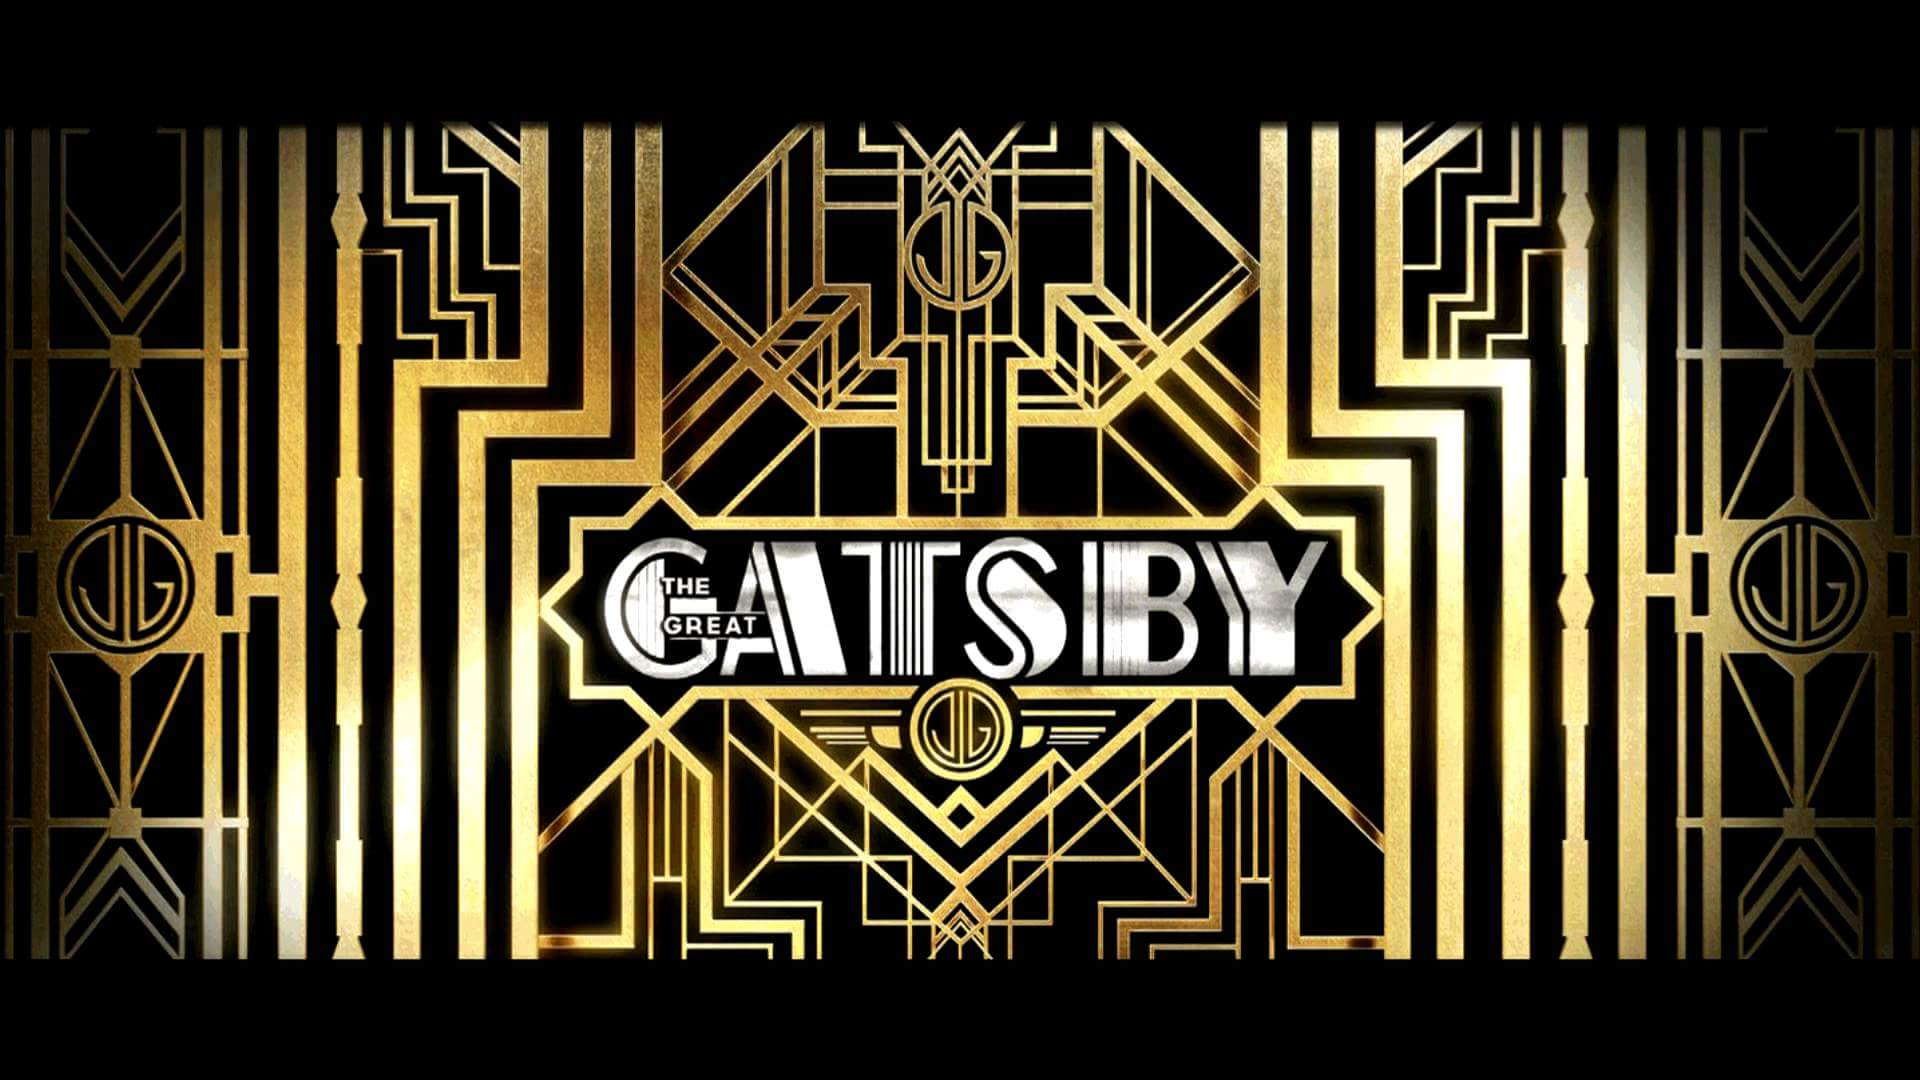 Great Gatsby Themed Ball in aid of the Brittle Bone Society